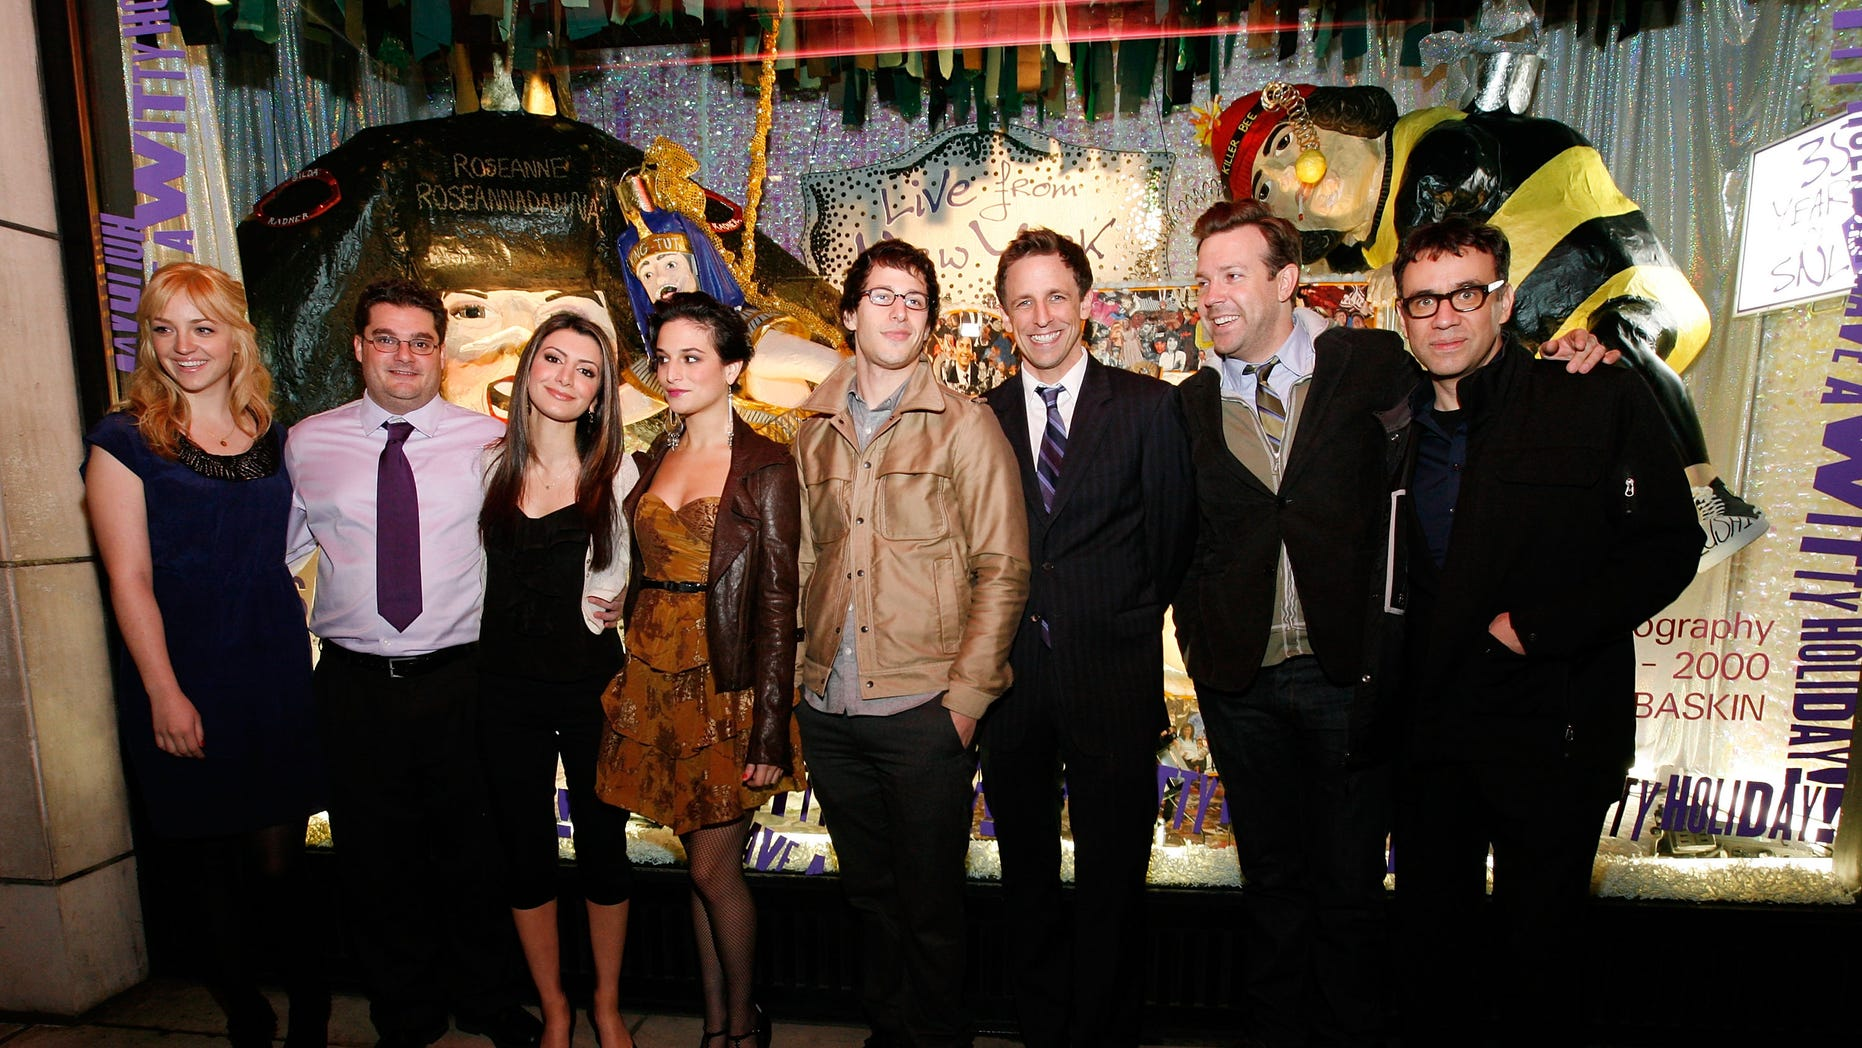 Cast of SNL celebrating 35 years of the show on November 16, 2009 in New York City.